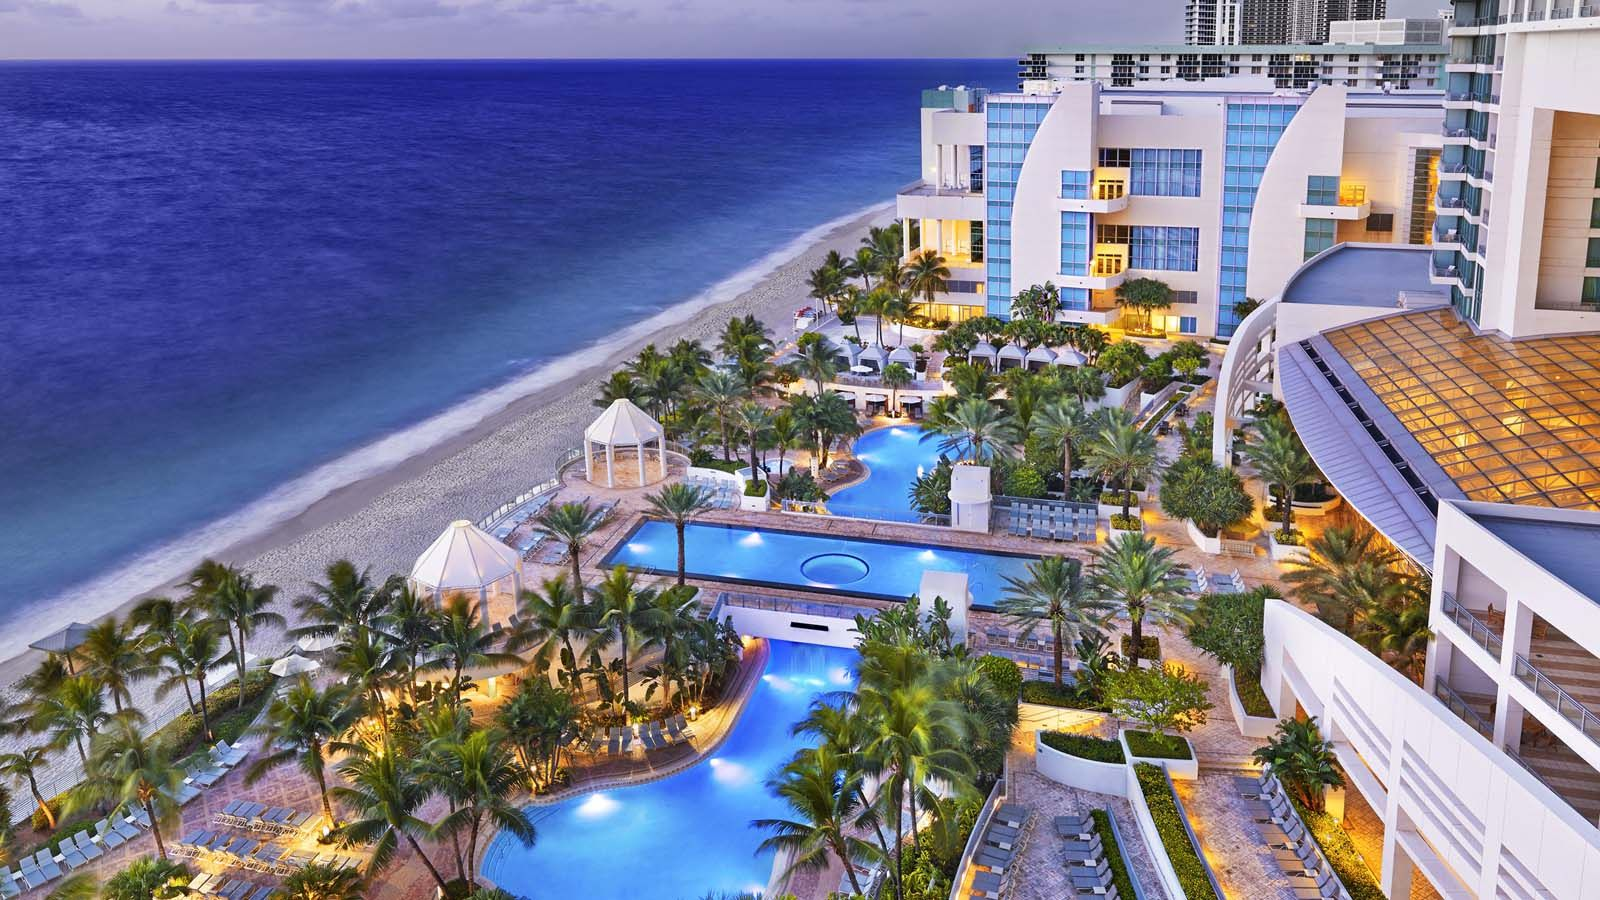 Resorts Short Trip But Very Nice Round Airfare Philadelphia To Fort Lauderdale Florida